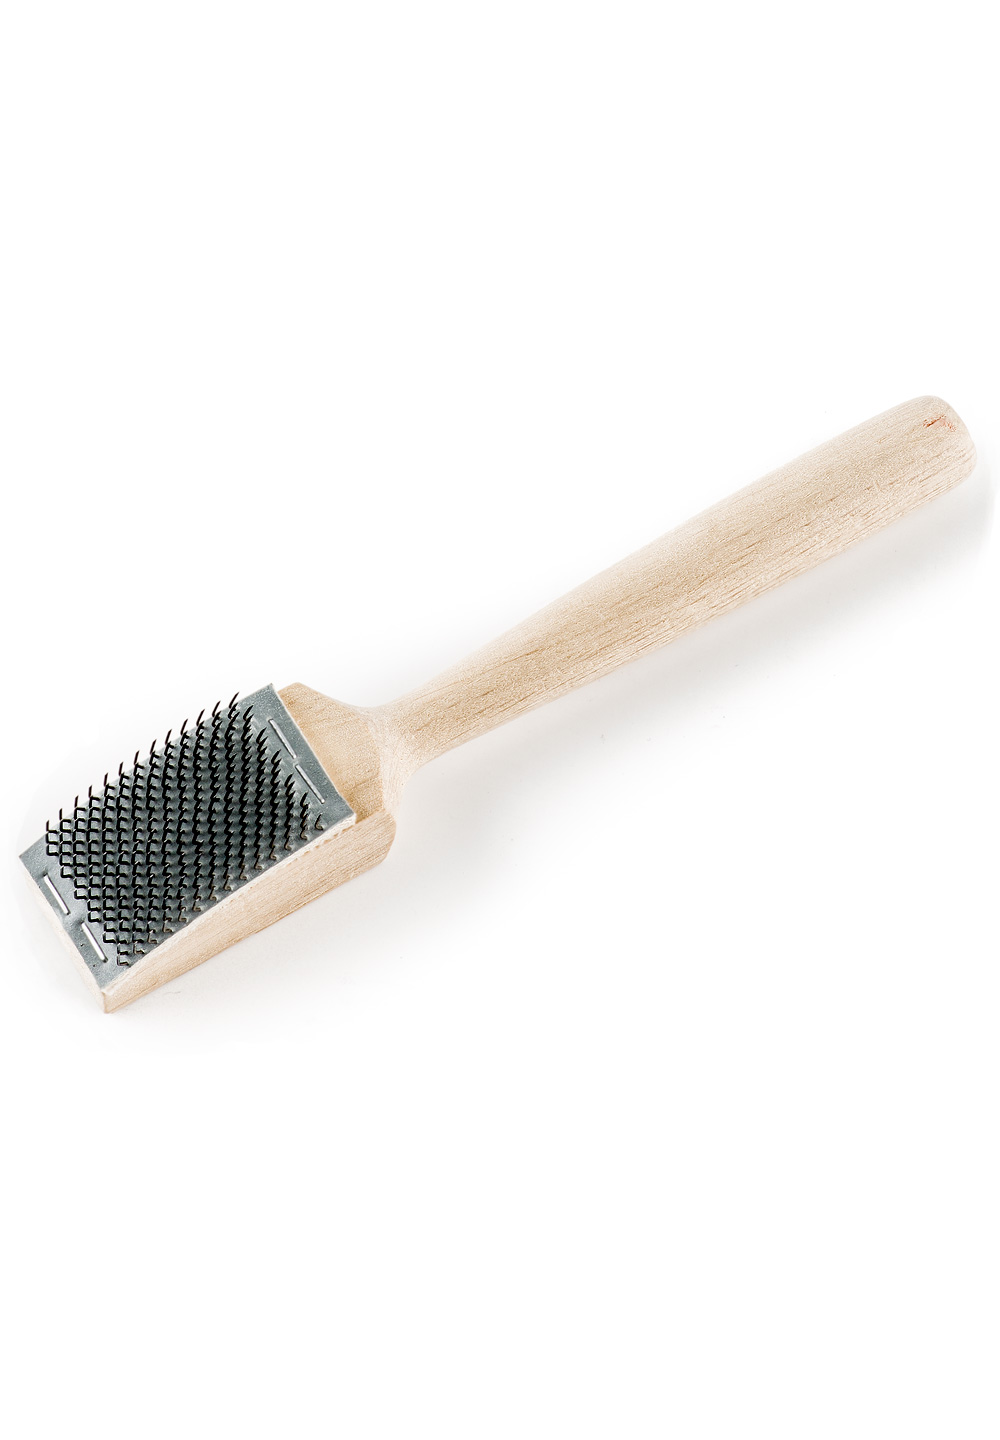 Paoul Sole Brush with Case